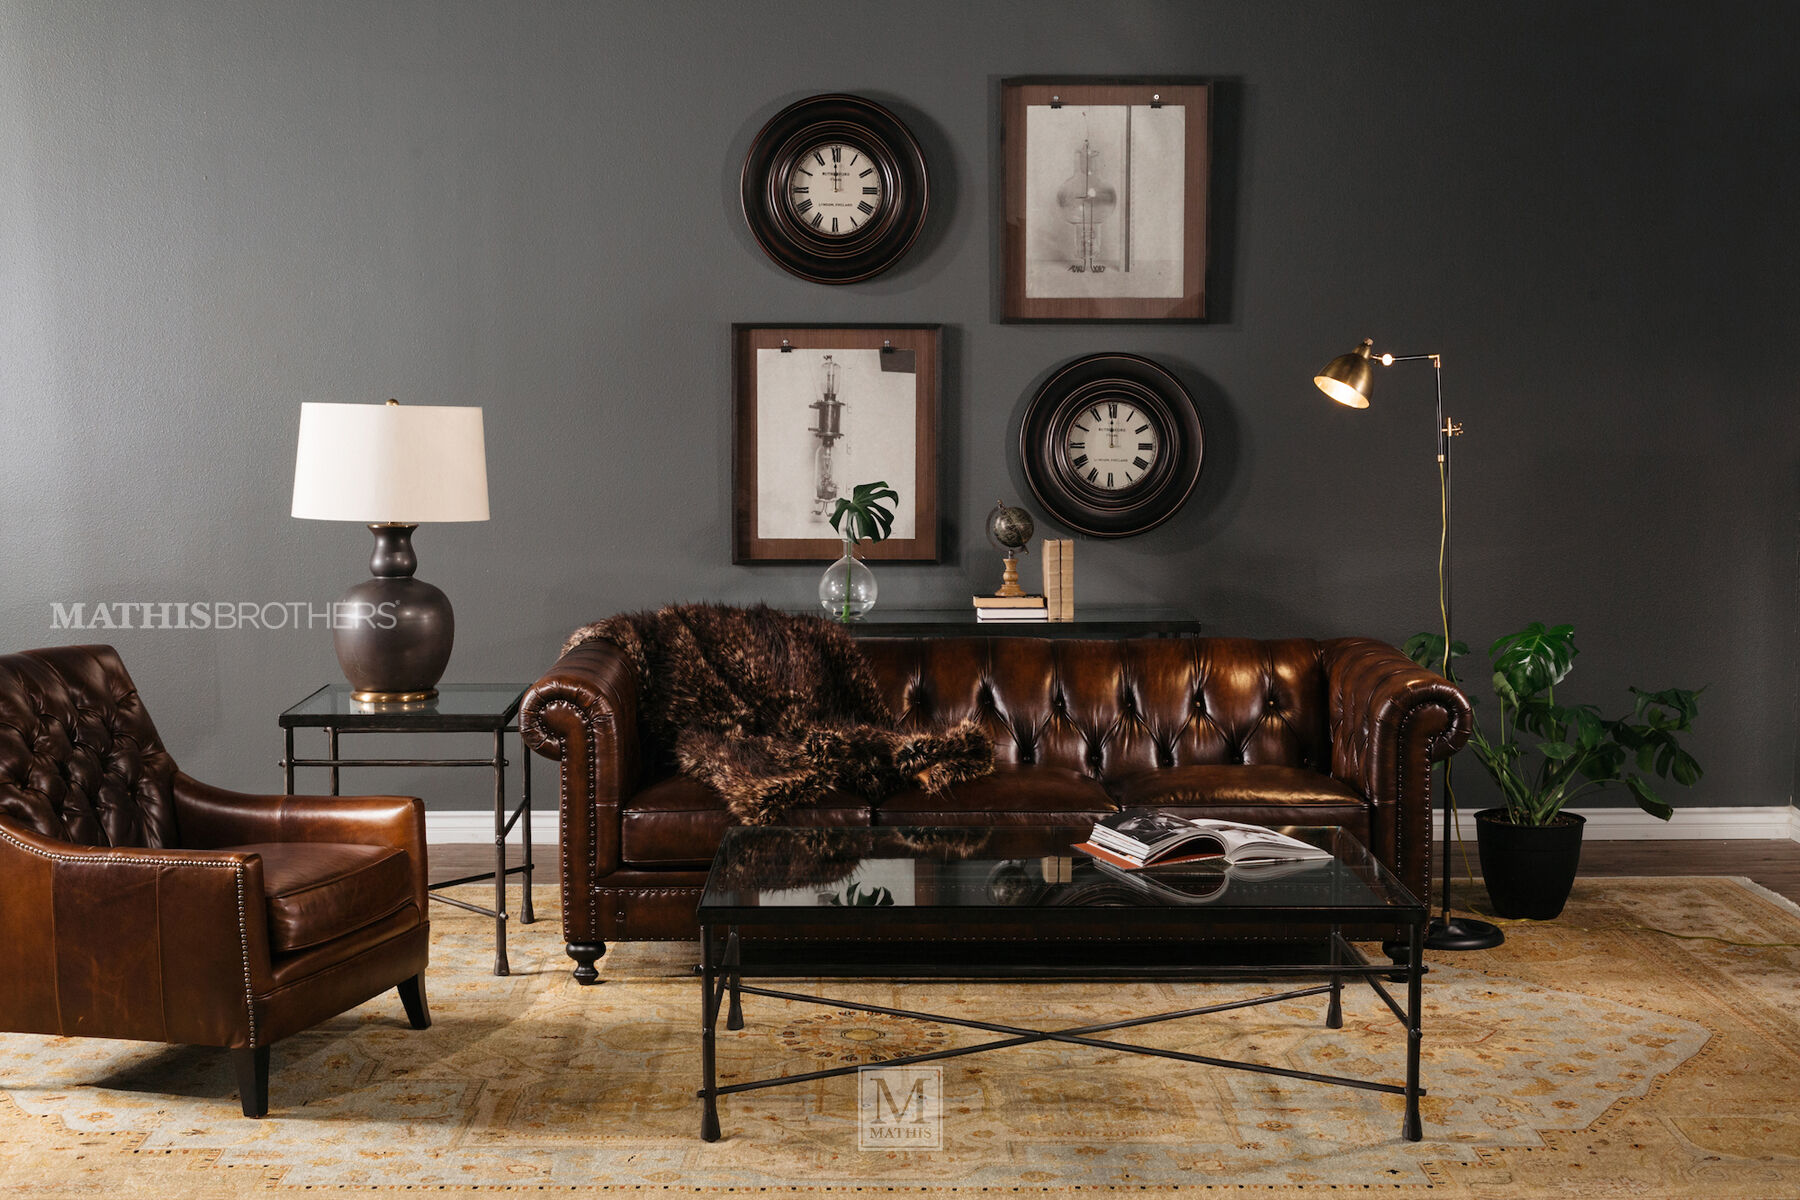 bernhardt brown leather club chair ashley table and chairs london dark sofa mathis